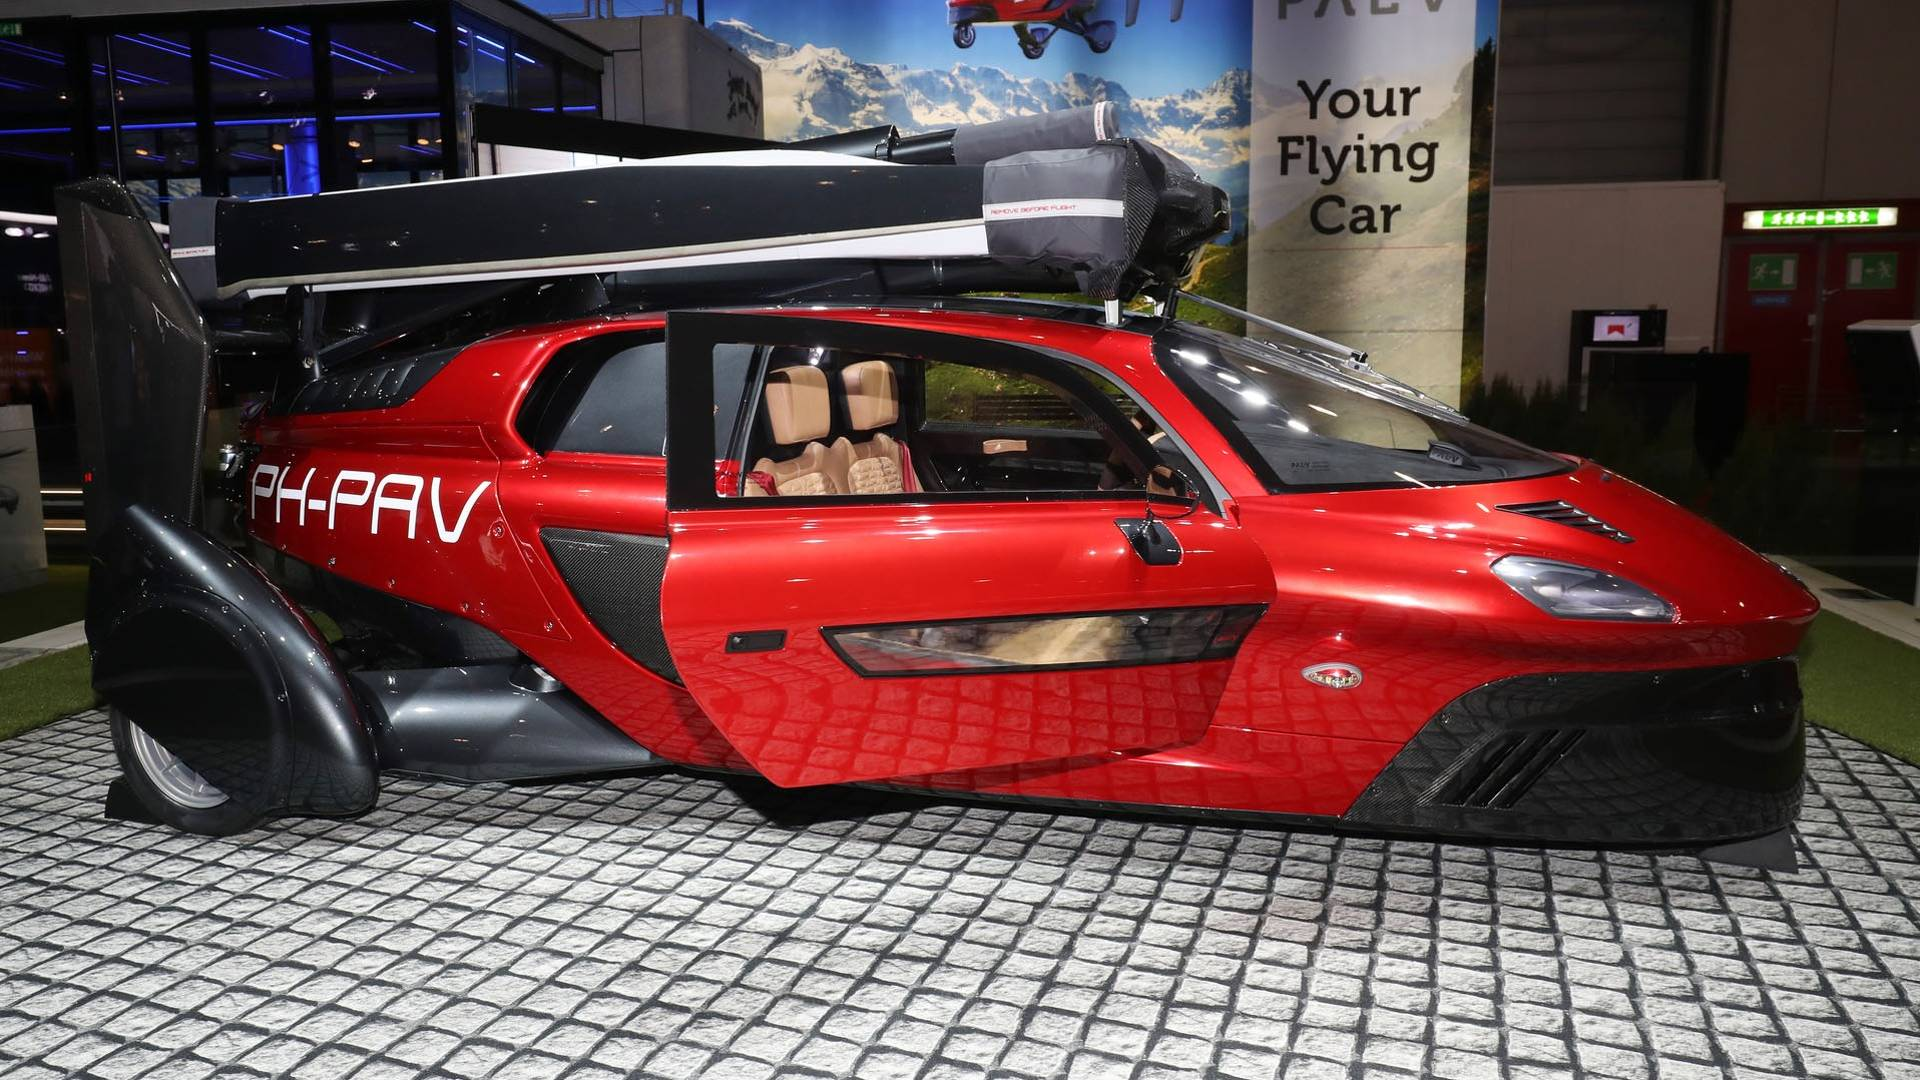 pal-v-liberty-flying-car (1)